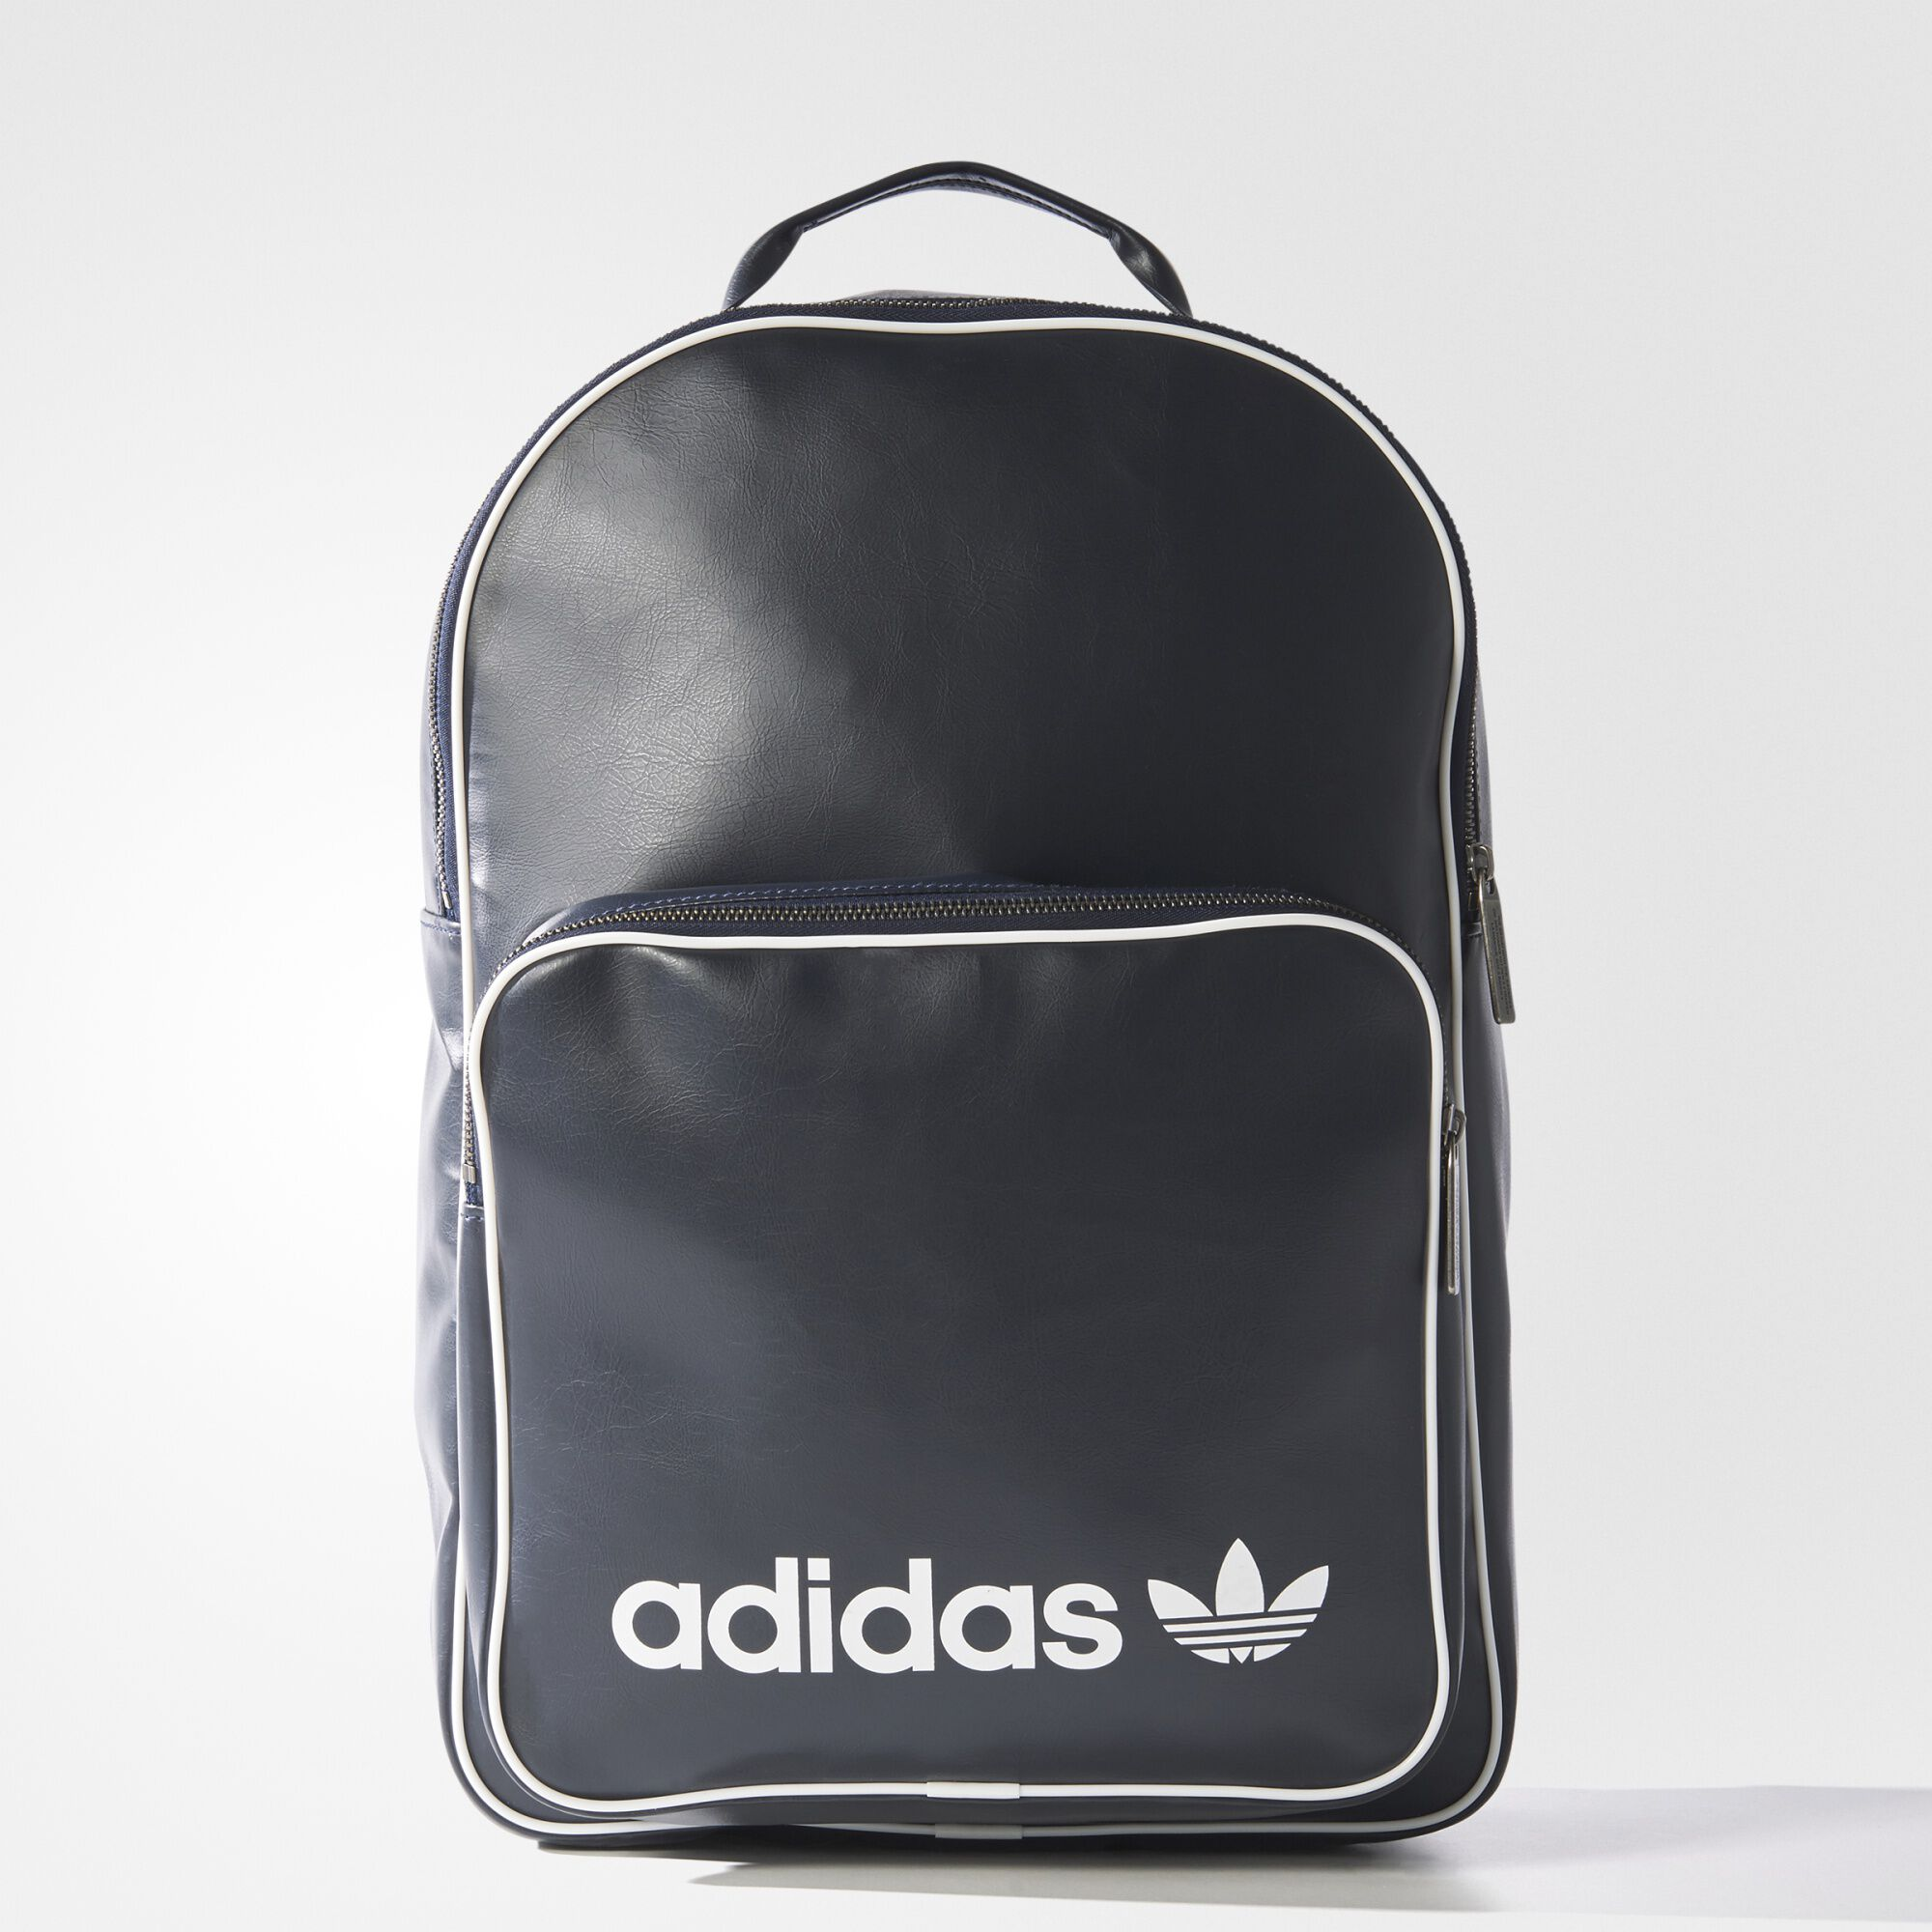 Buy adidas sackpack 2014   OFF33% Discounted 6ae1a6460f05c